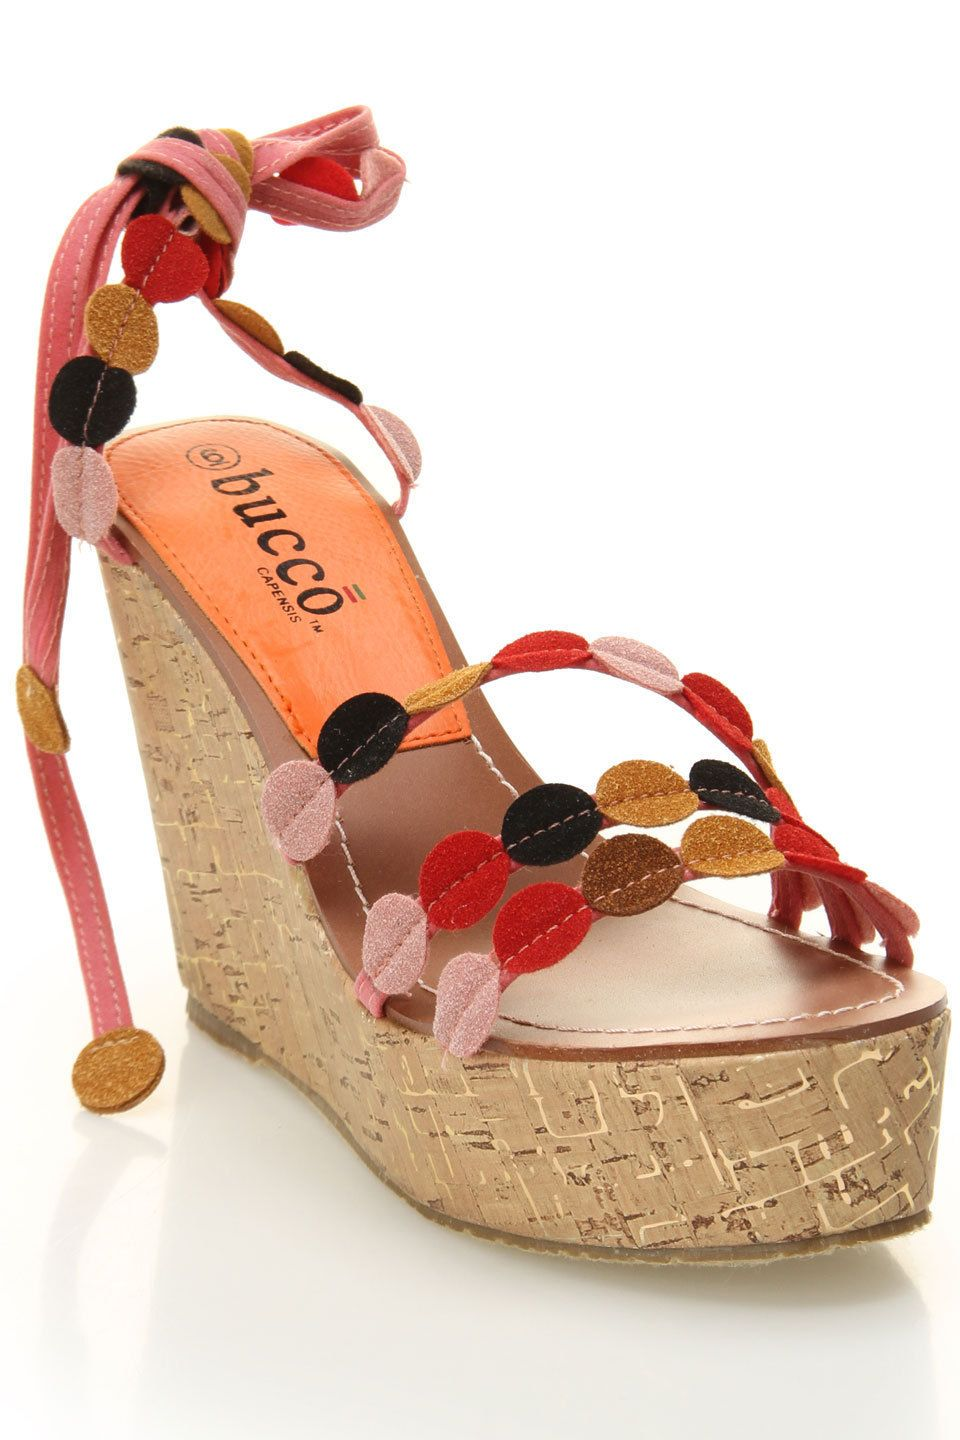 Bucco Venice Wedge In Pink Felt Circles!